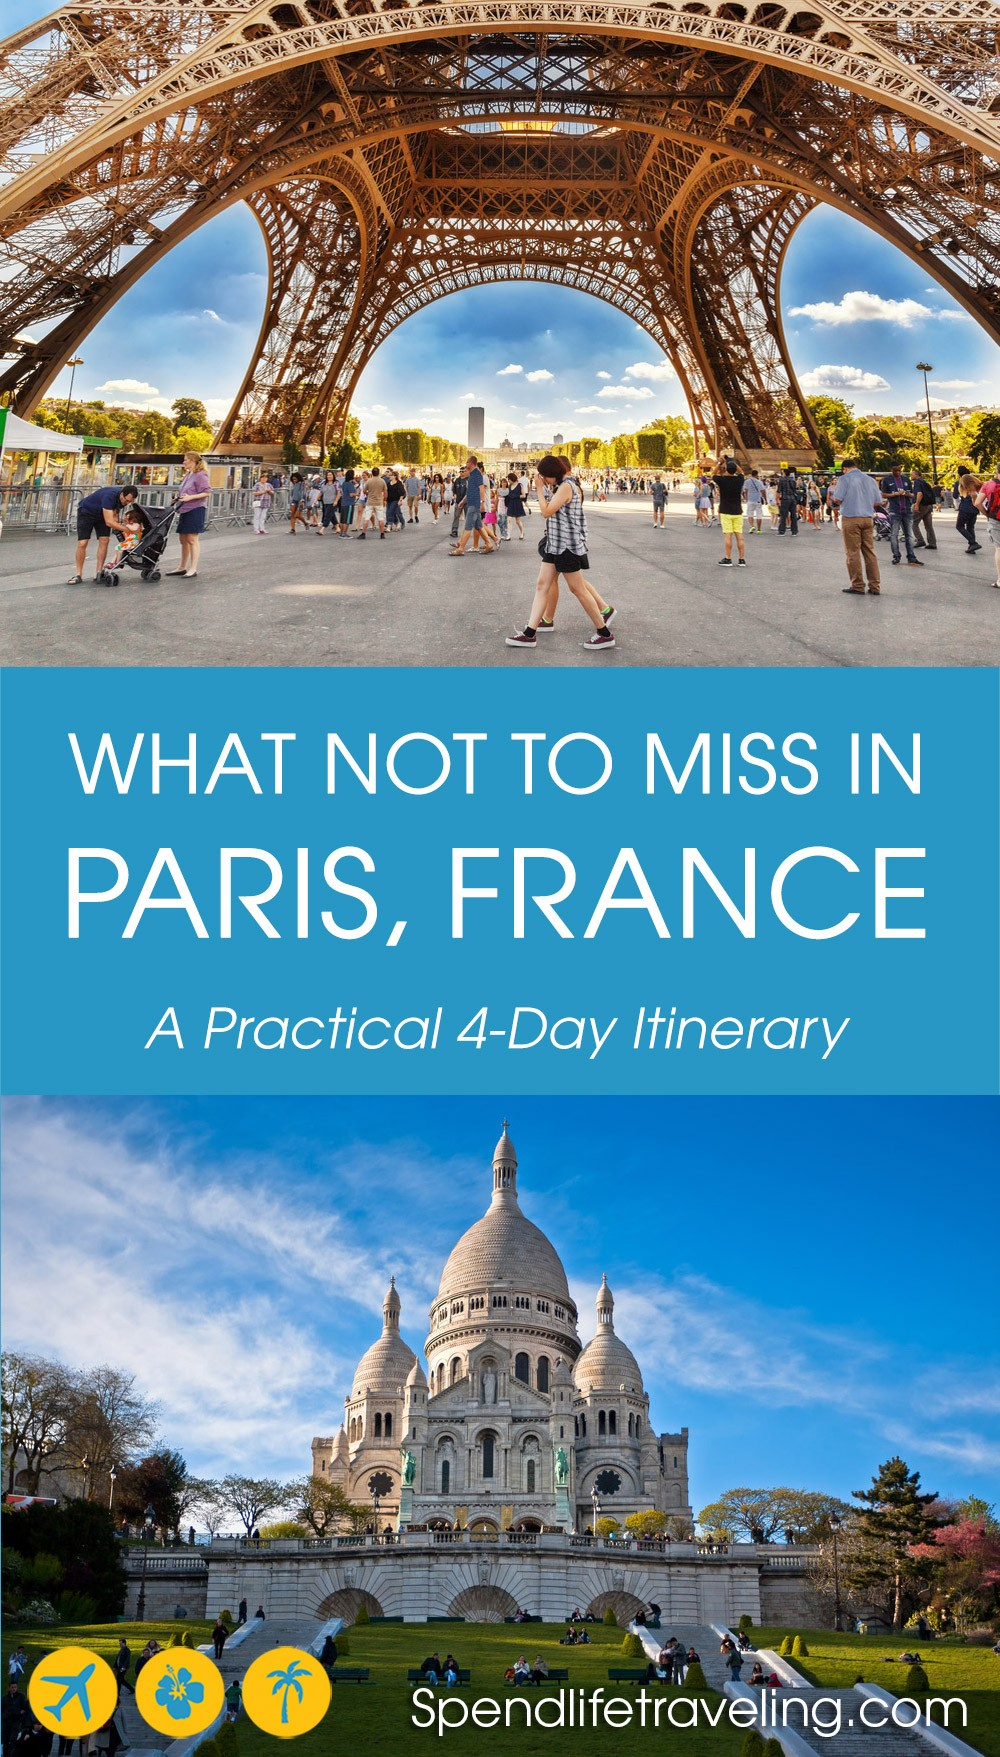 A practical itinerary for 4 days in Paris